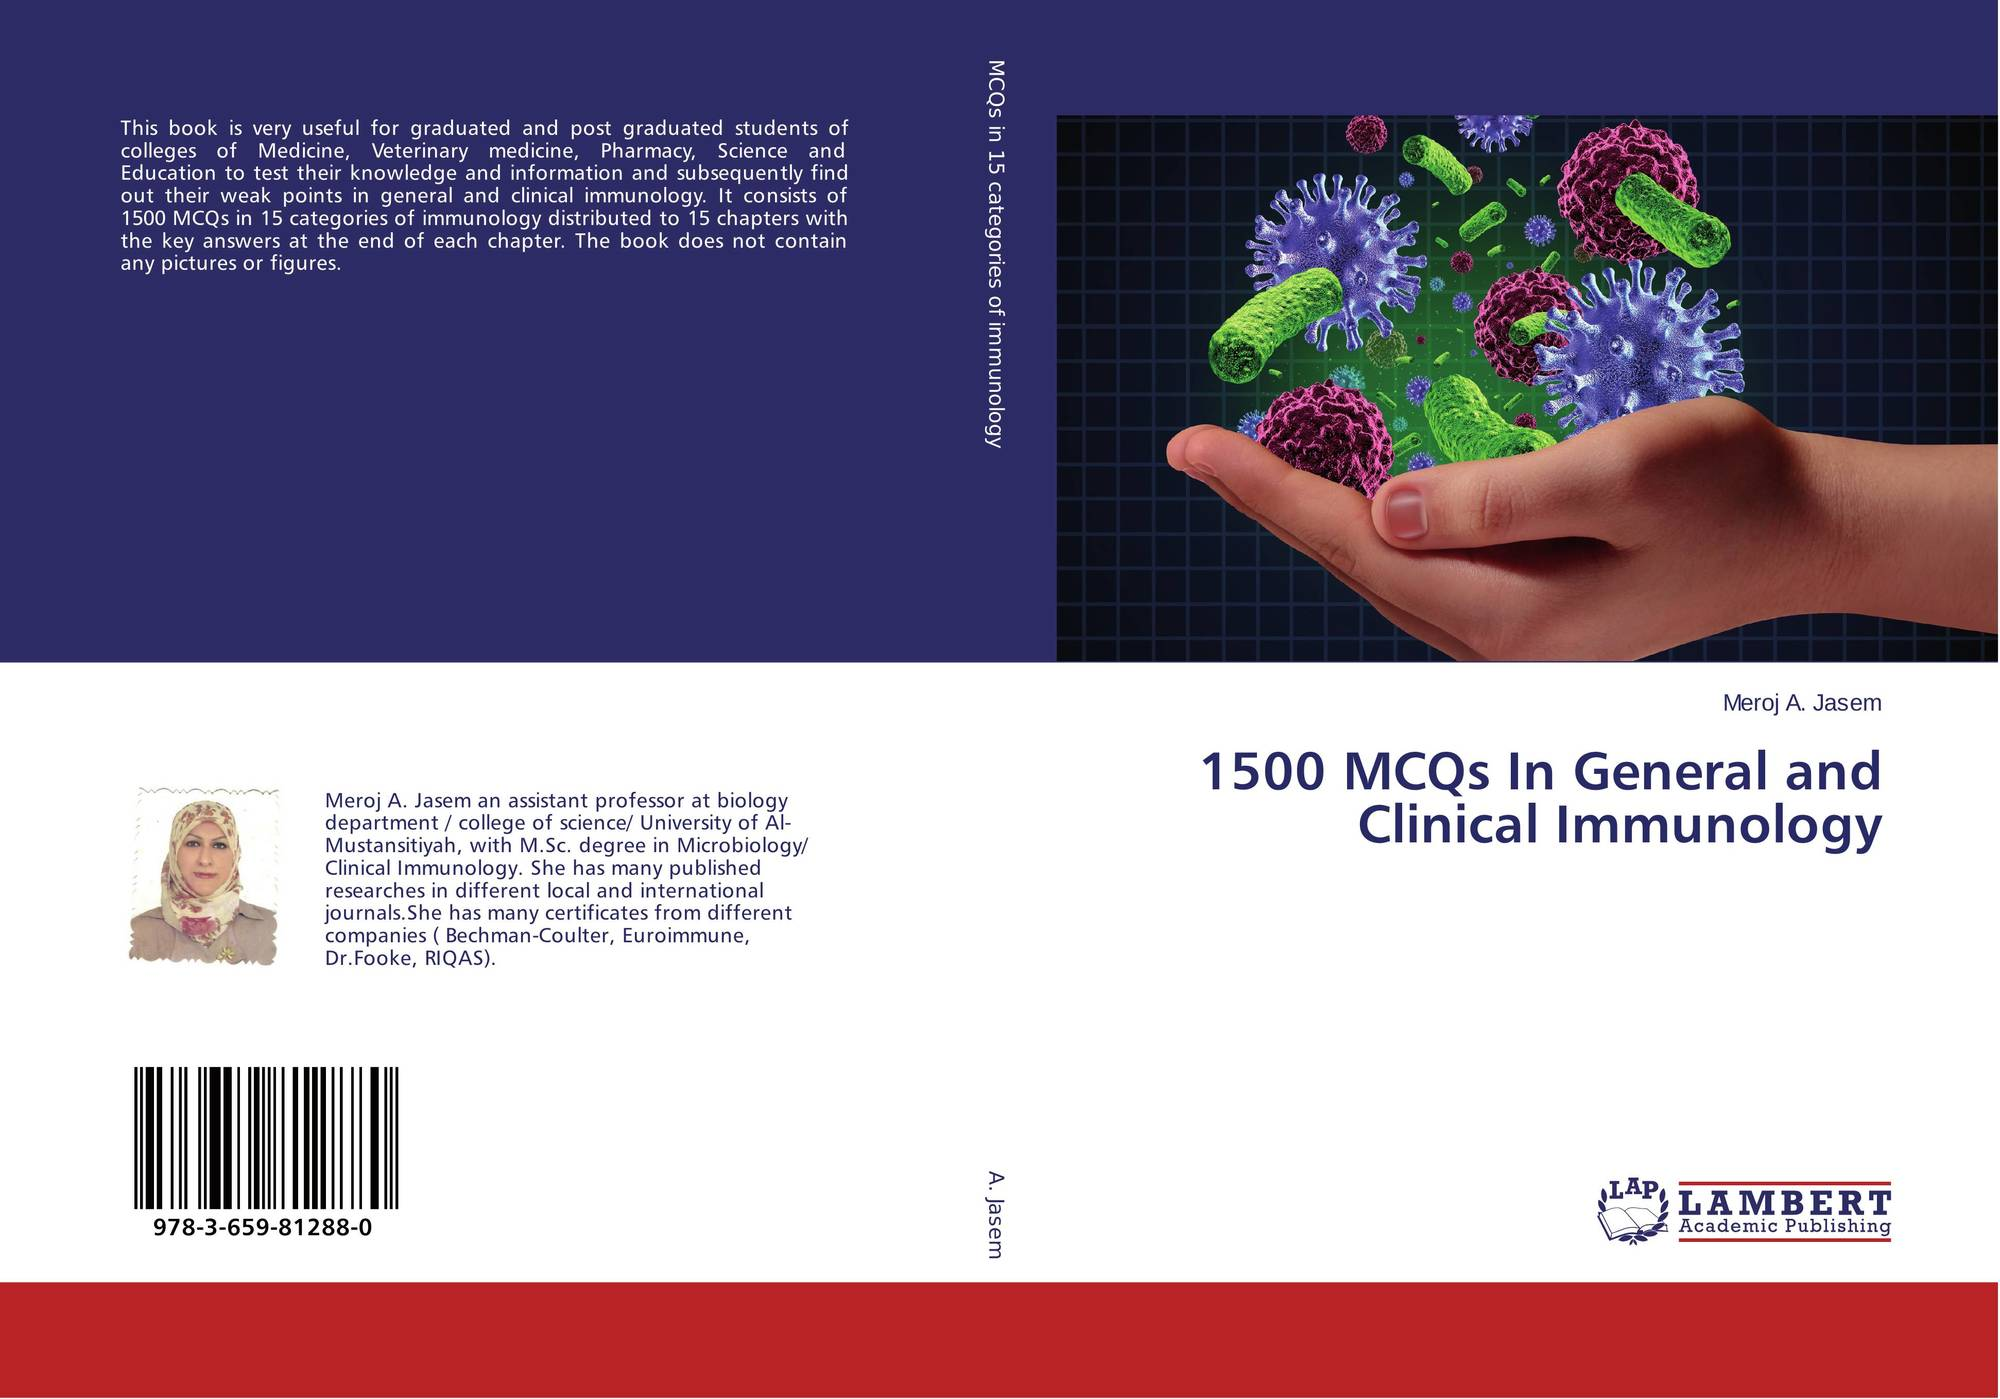 1500 MCQs In General and Clinical Immunology, 978-3-659